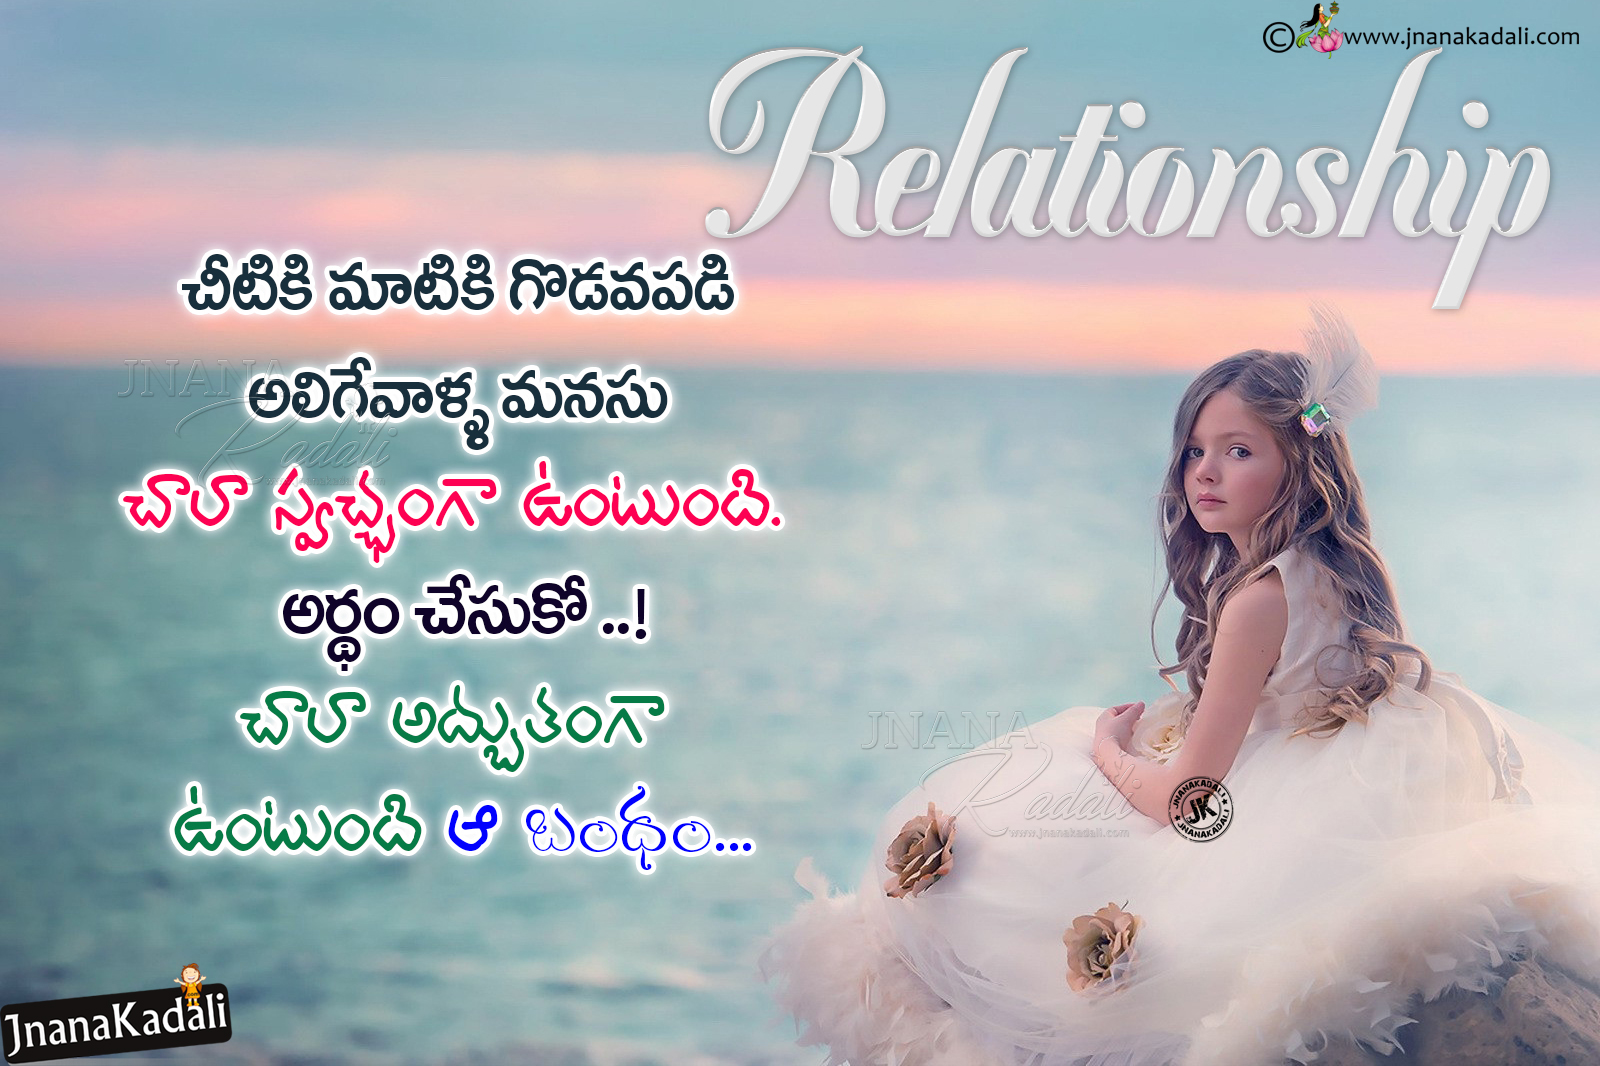 Cute Telugu Relationship Messages With Cute Baby Hd Wallpapers Free